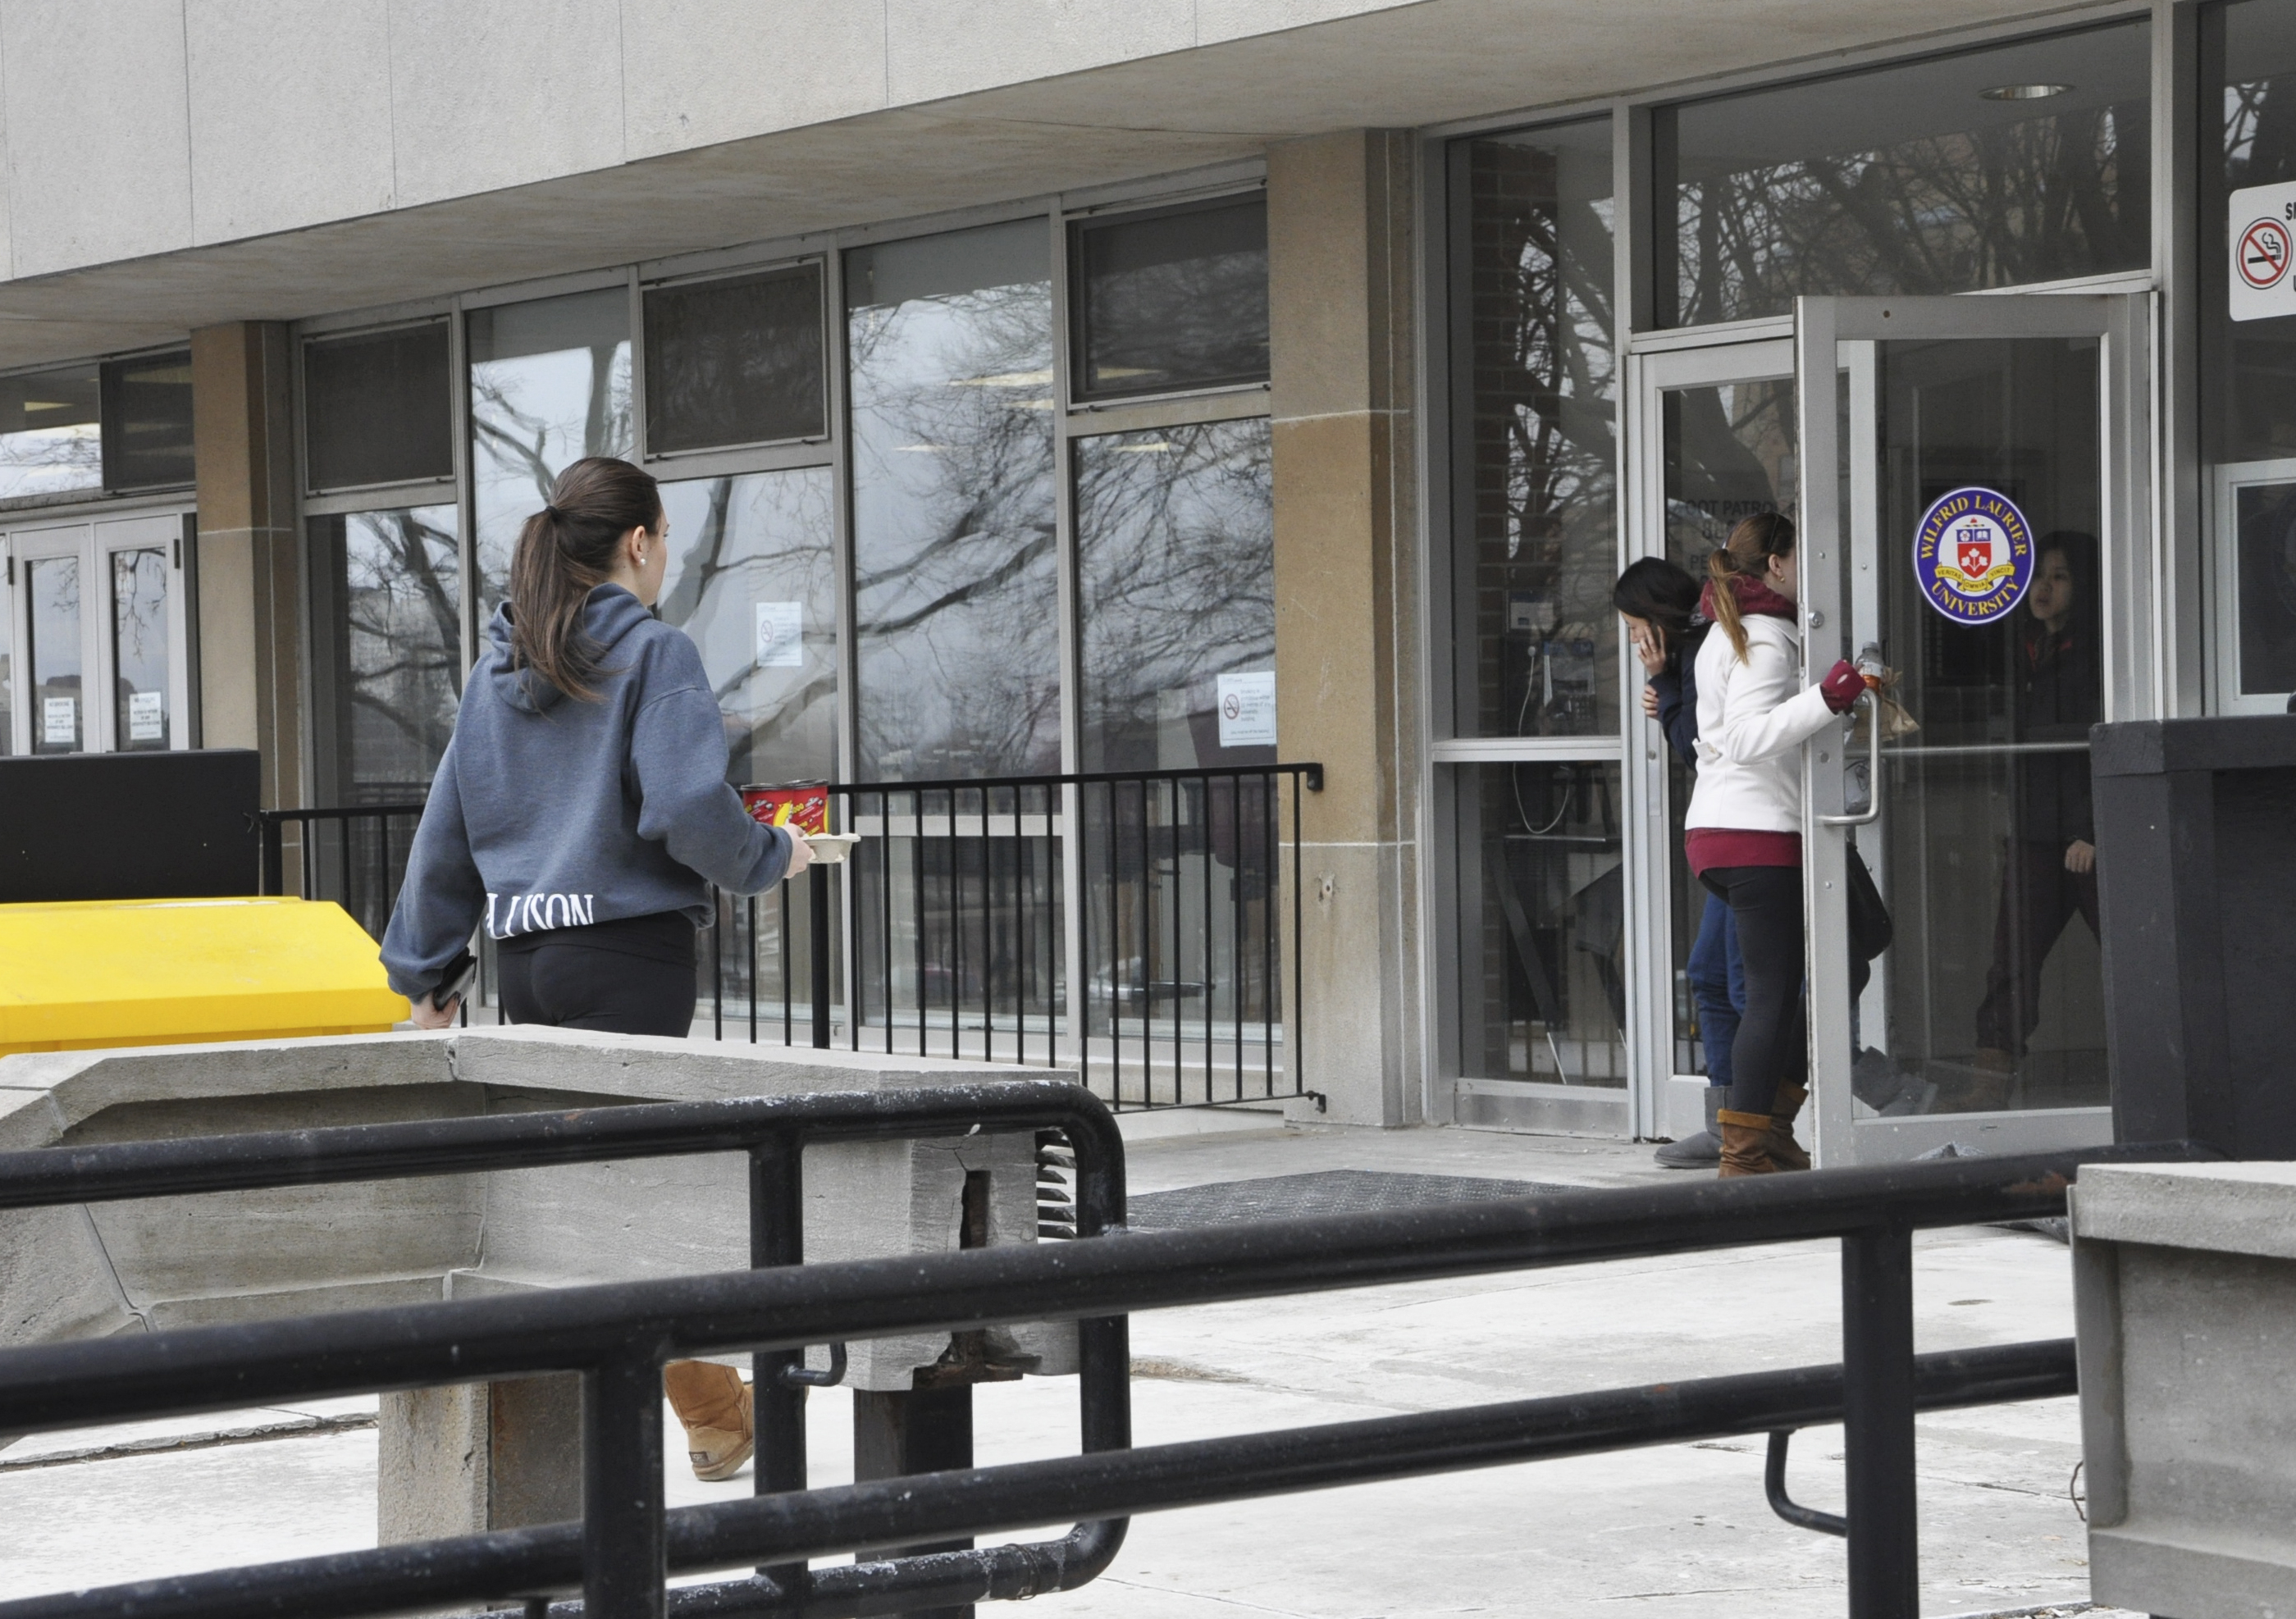 Students make their way to the library to get started on their work (photo by Samantha Kellerman).